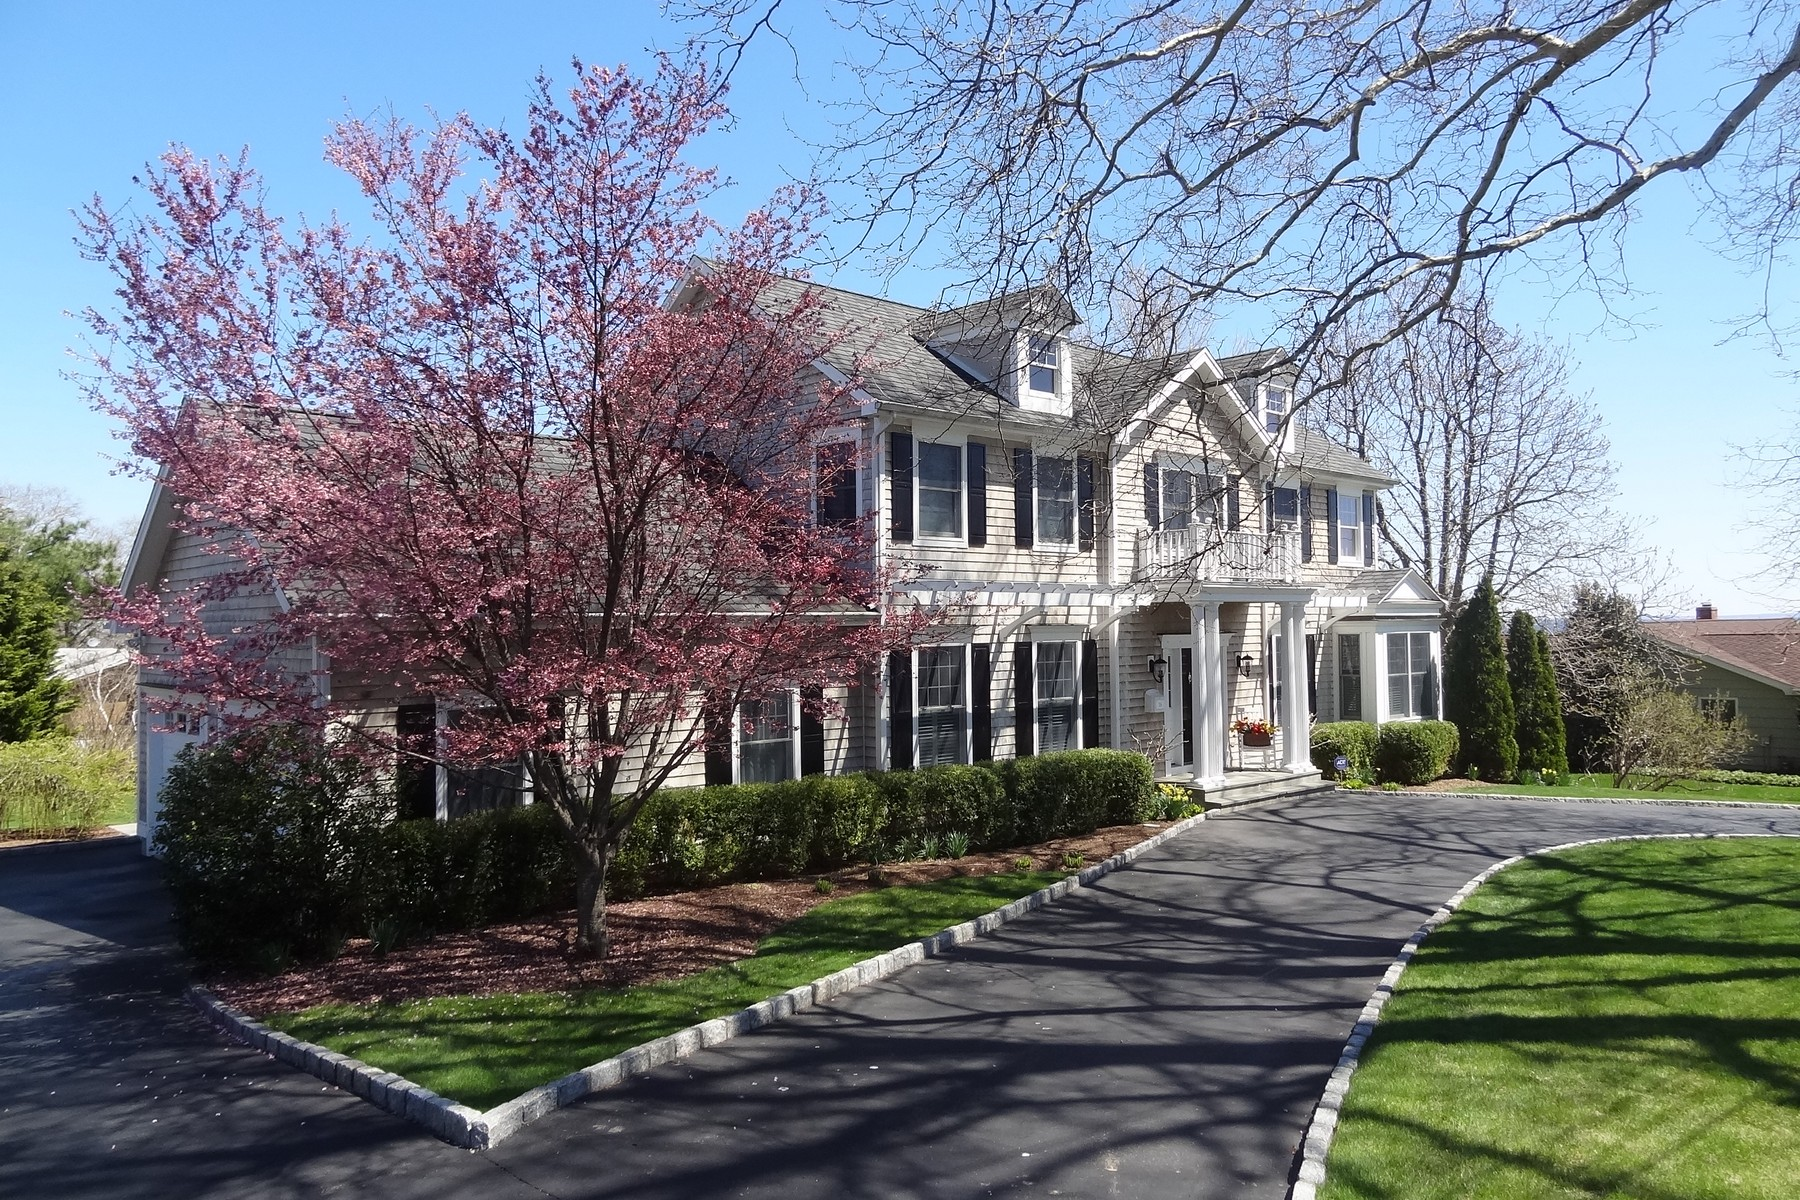 Villa per Vendita alle ore Spectacular Nantucket Style Colonial Overlooking L.I. Sound in St. Mary's by the 35 Battery Park Drive Bridgeport, Connecticut, 06605 Stati Uniti